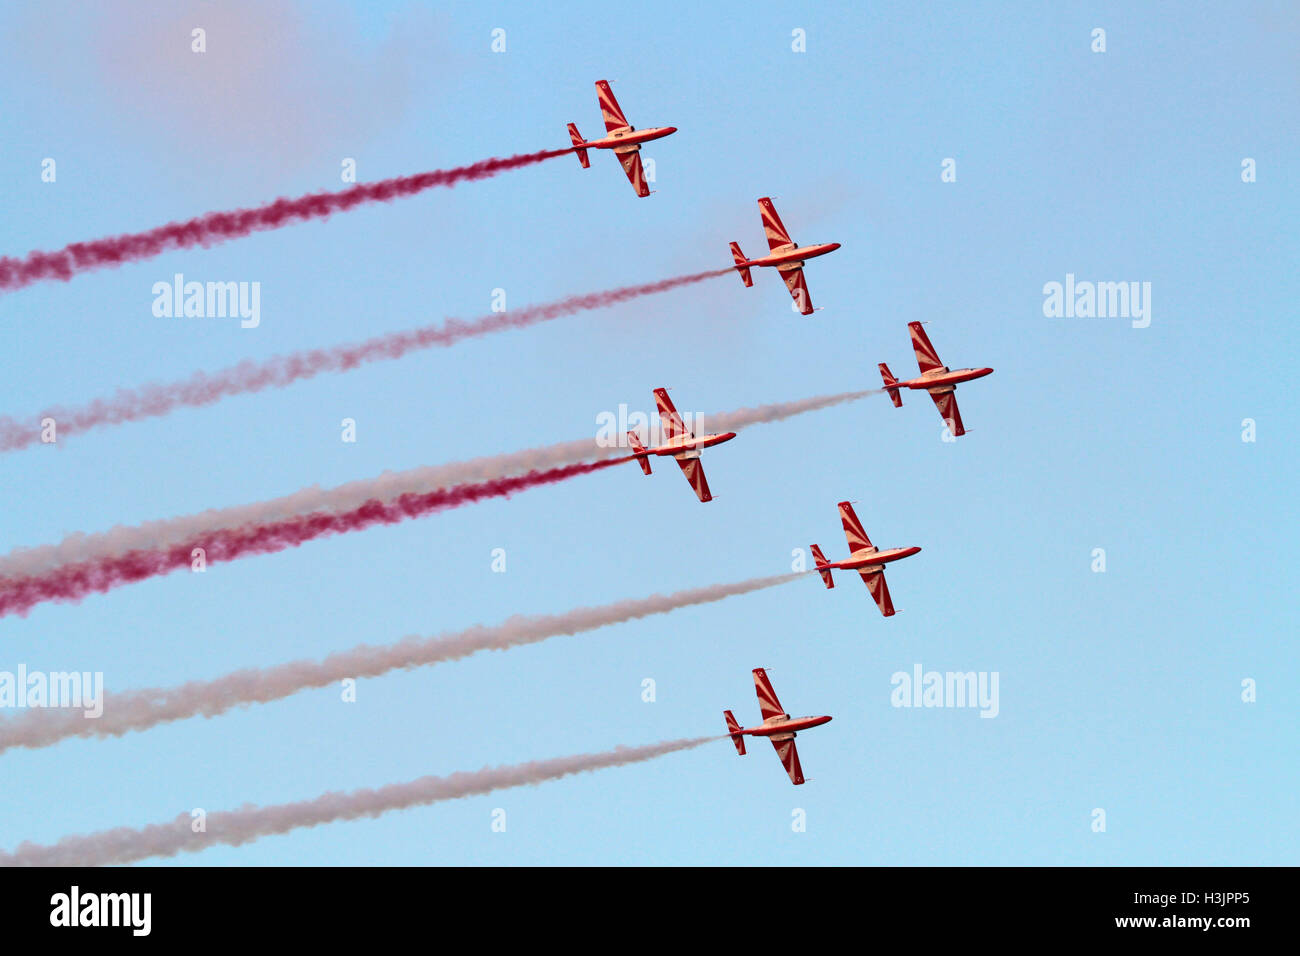 The Polish Air Force aerobatic team, the Bialo-Czerwone Iskry (White and Red Sparks), flying in formation - Stock Image